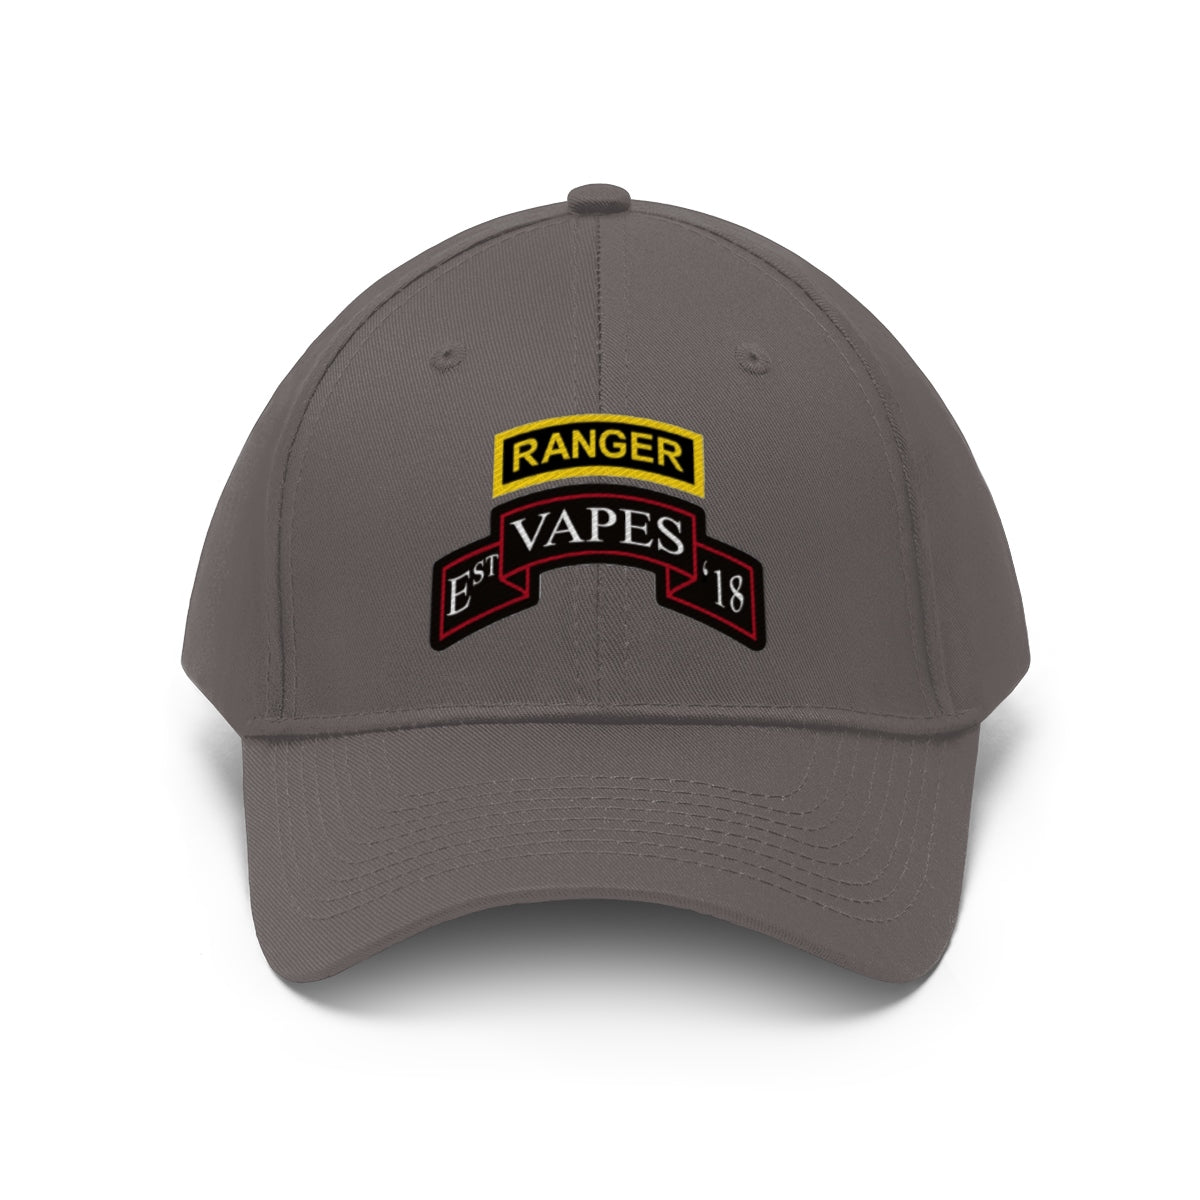 Ranger Vapes Twill Hat